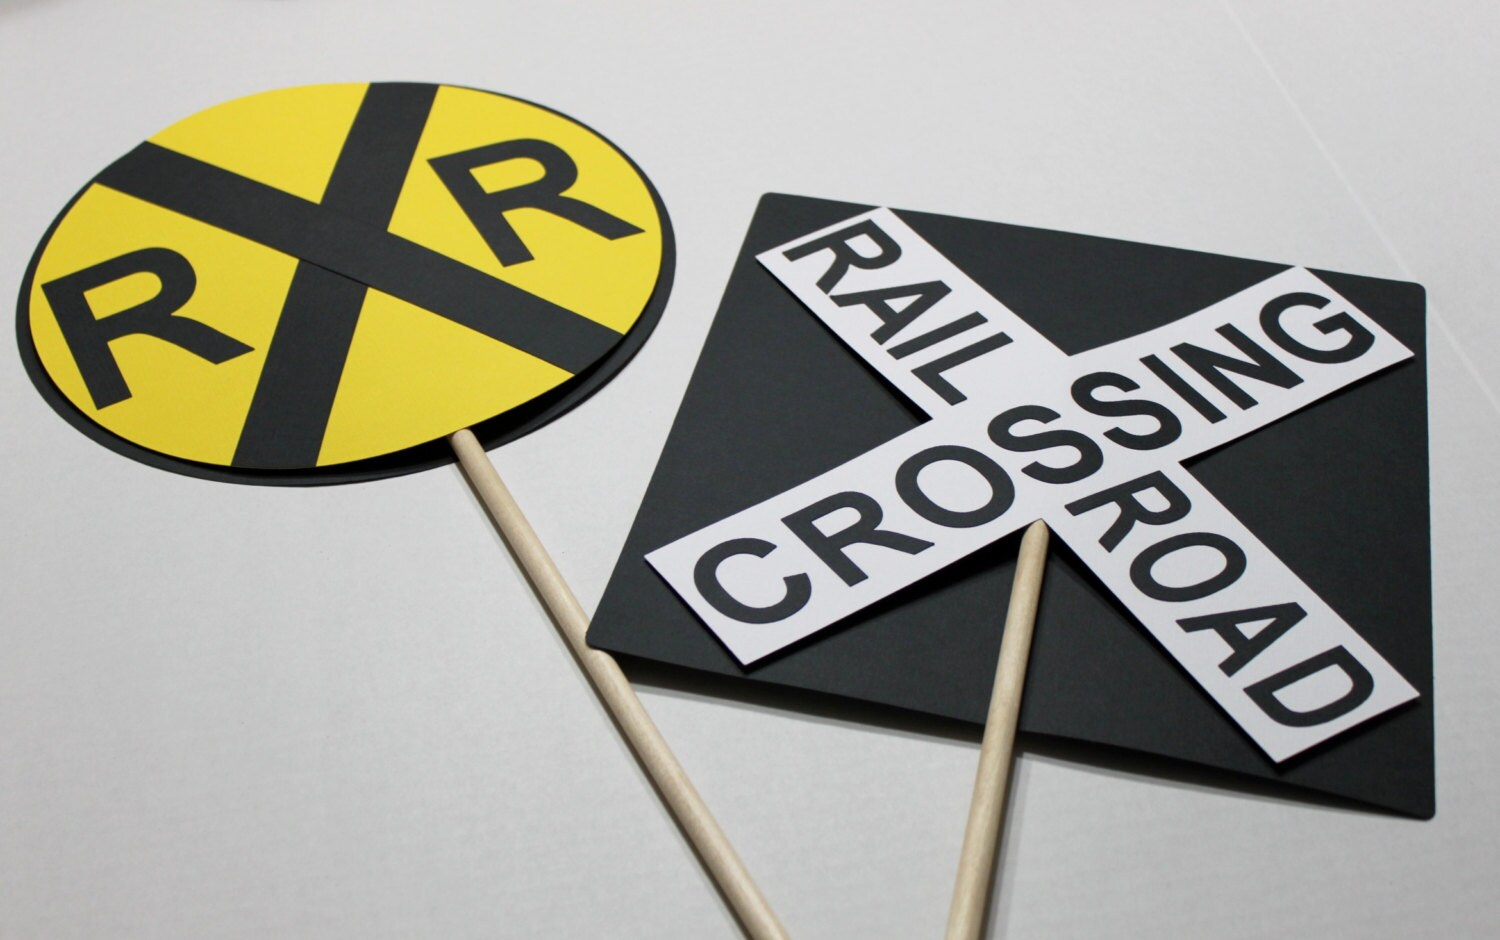 photo about Railroad Crossing Sign Printable called Practice celebration centerpiece, teach birthday social gathering, railroad crossing centerpiece, prepare bash decoration, teach birthday celebration decor